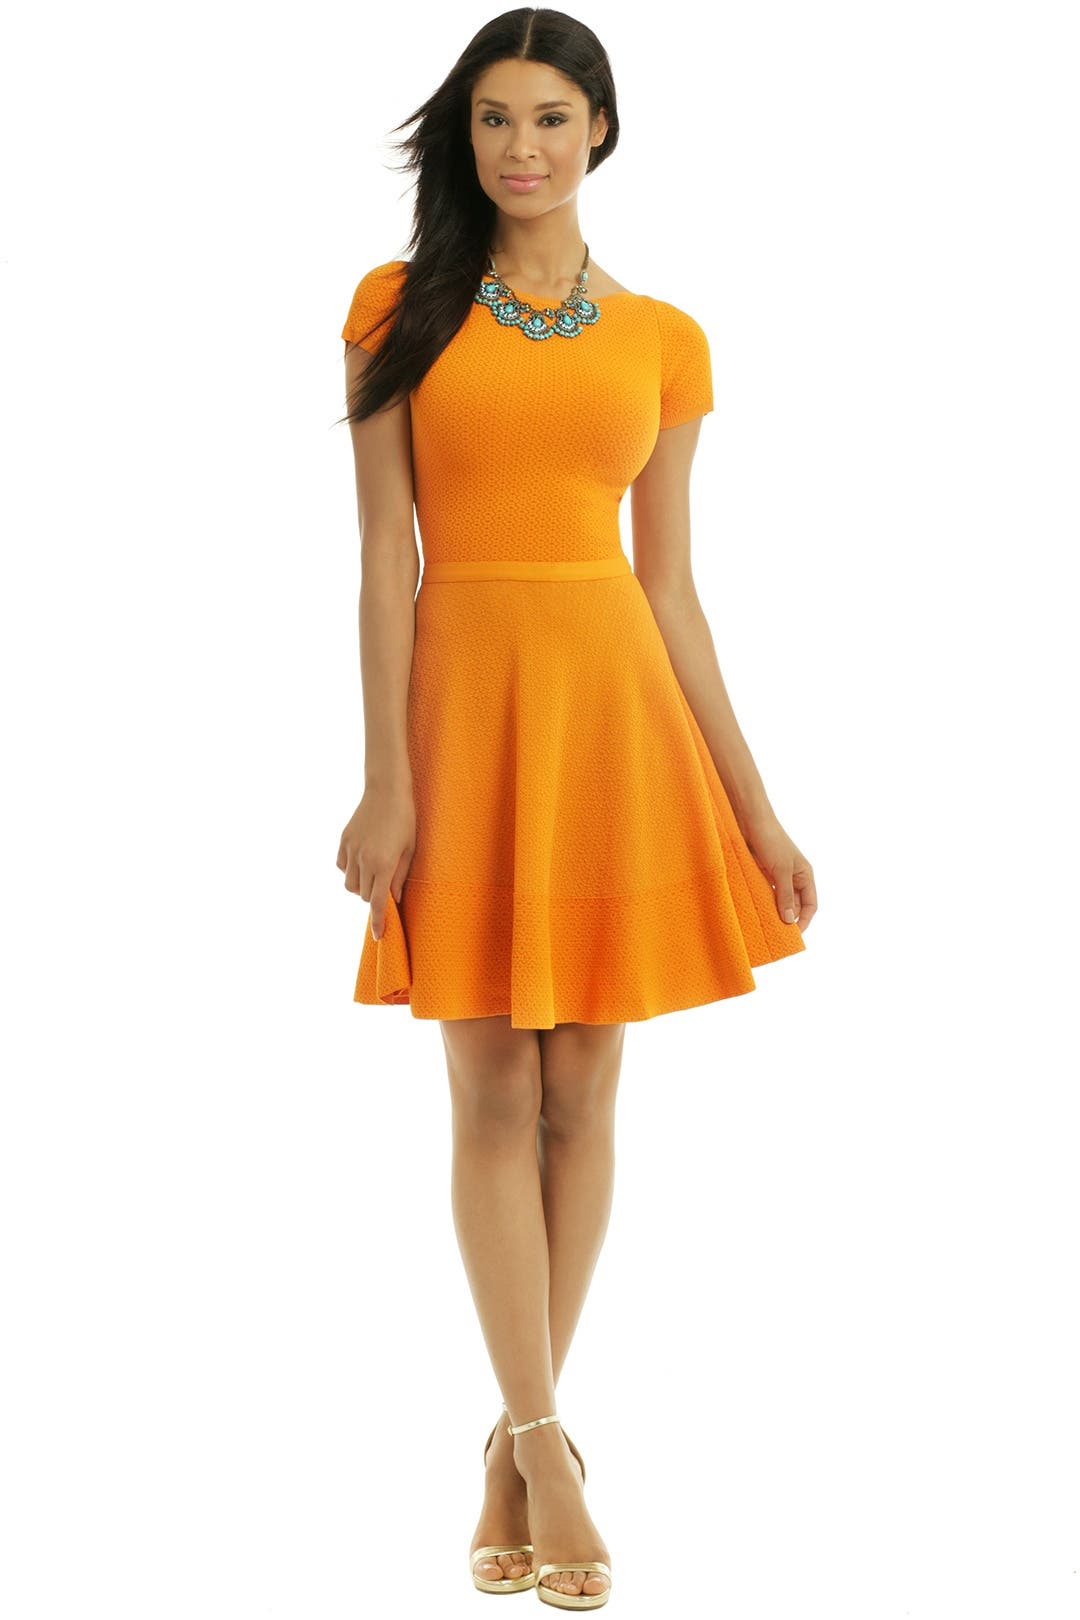 Out Of This World Orange Dress by No. 21